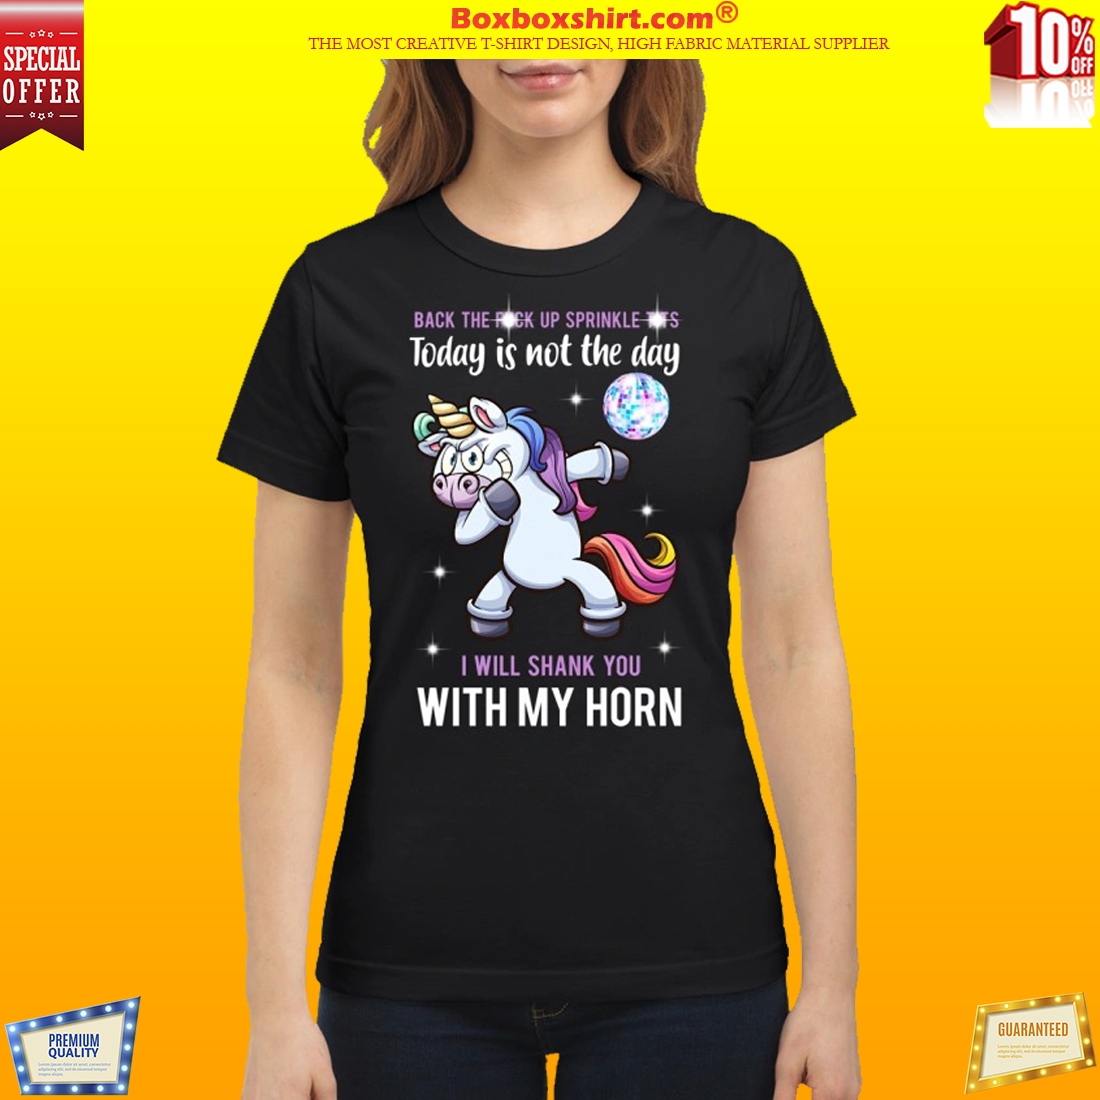 Fucked Up Tits unicorn dance back the fuck up sprinkle tits today is not the day shirt